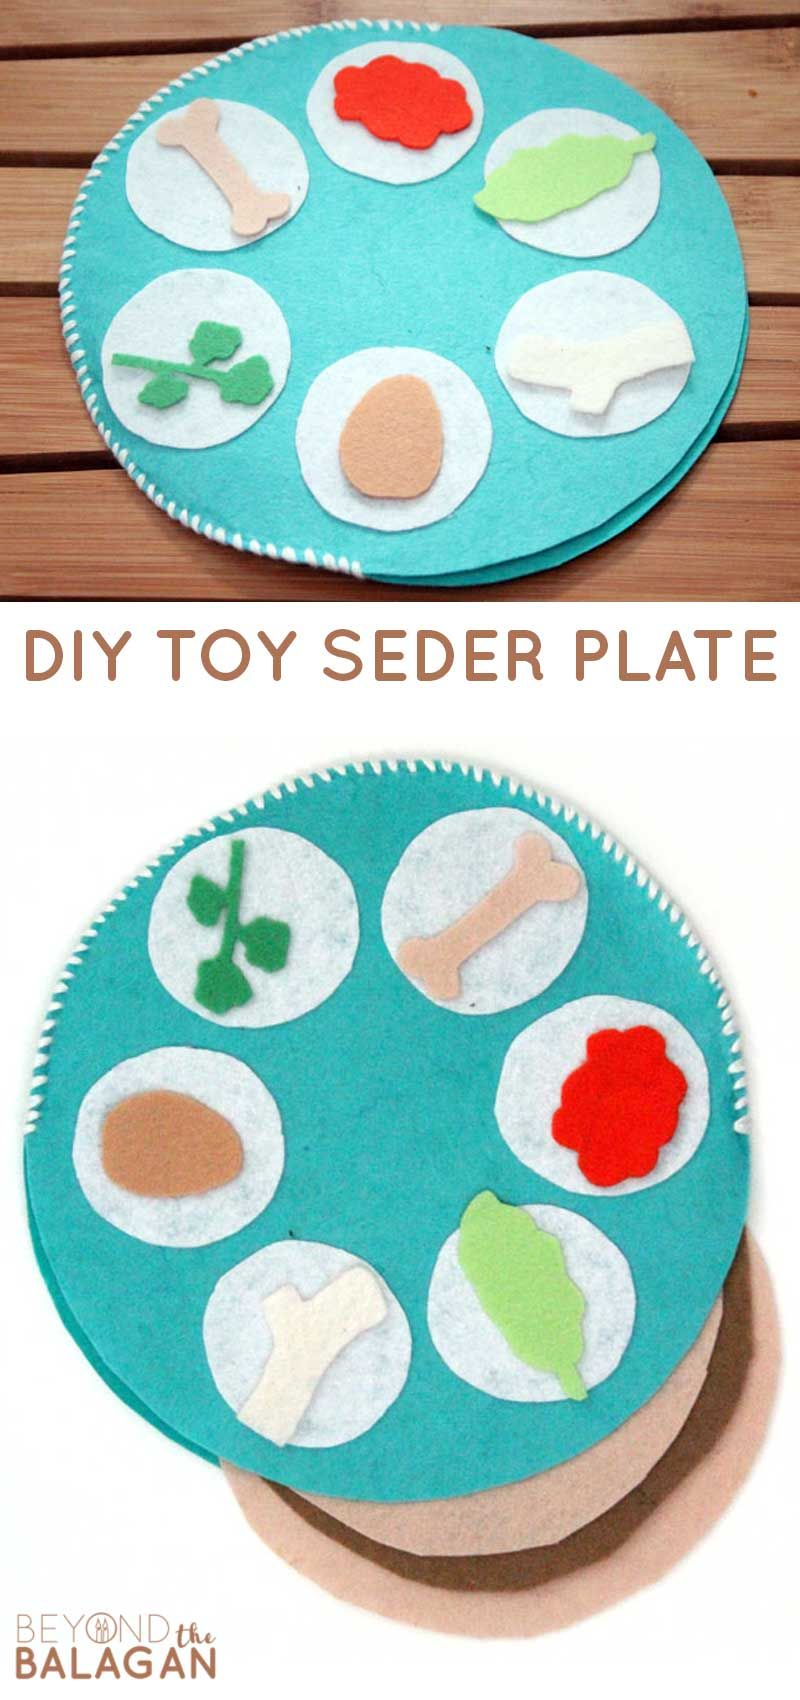 Make This Really Fun Pesach Toy A Felt Seder Plate For Passover This Pesach Craft Is Fun For Toddlers To Pla Pesach Crafts Passover Crafts Seder Plate Craft [ 1700 x 800 Pixel ]